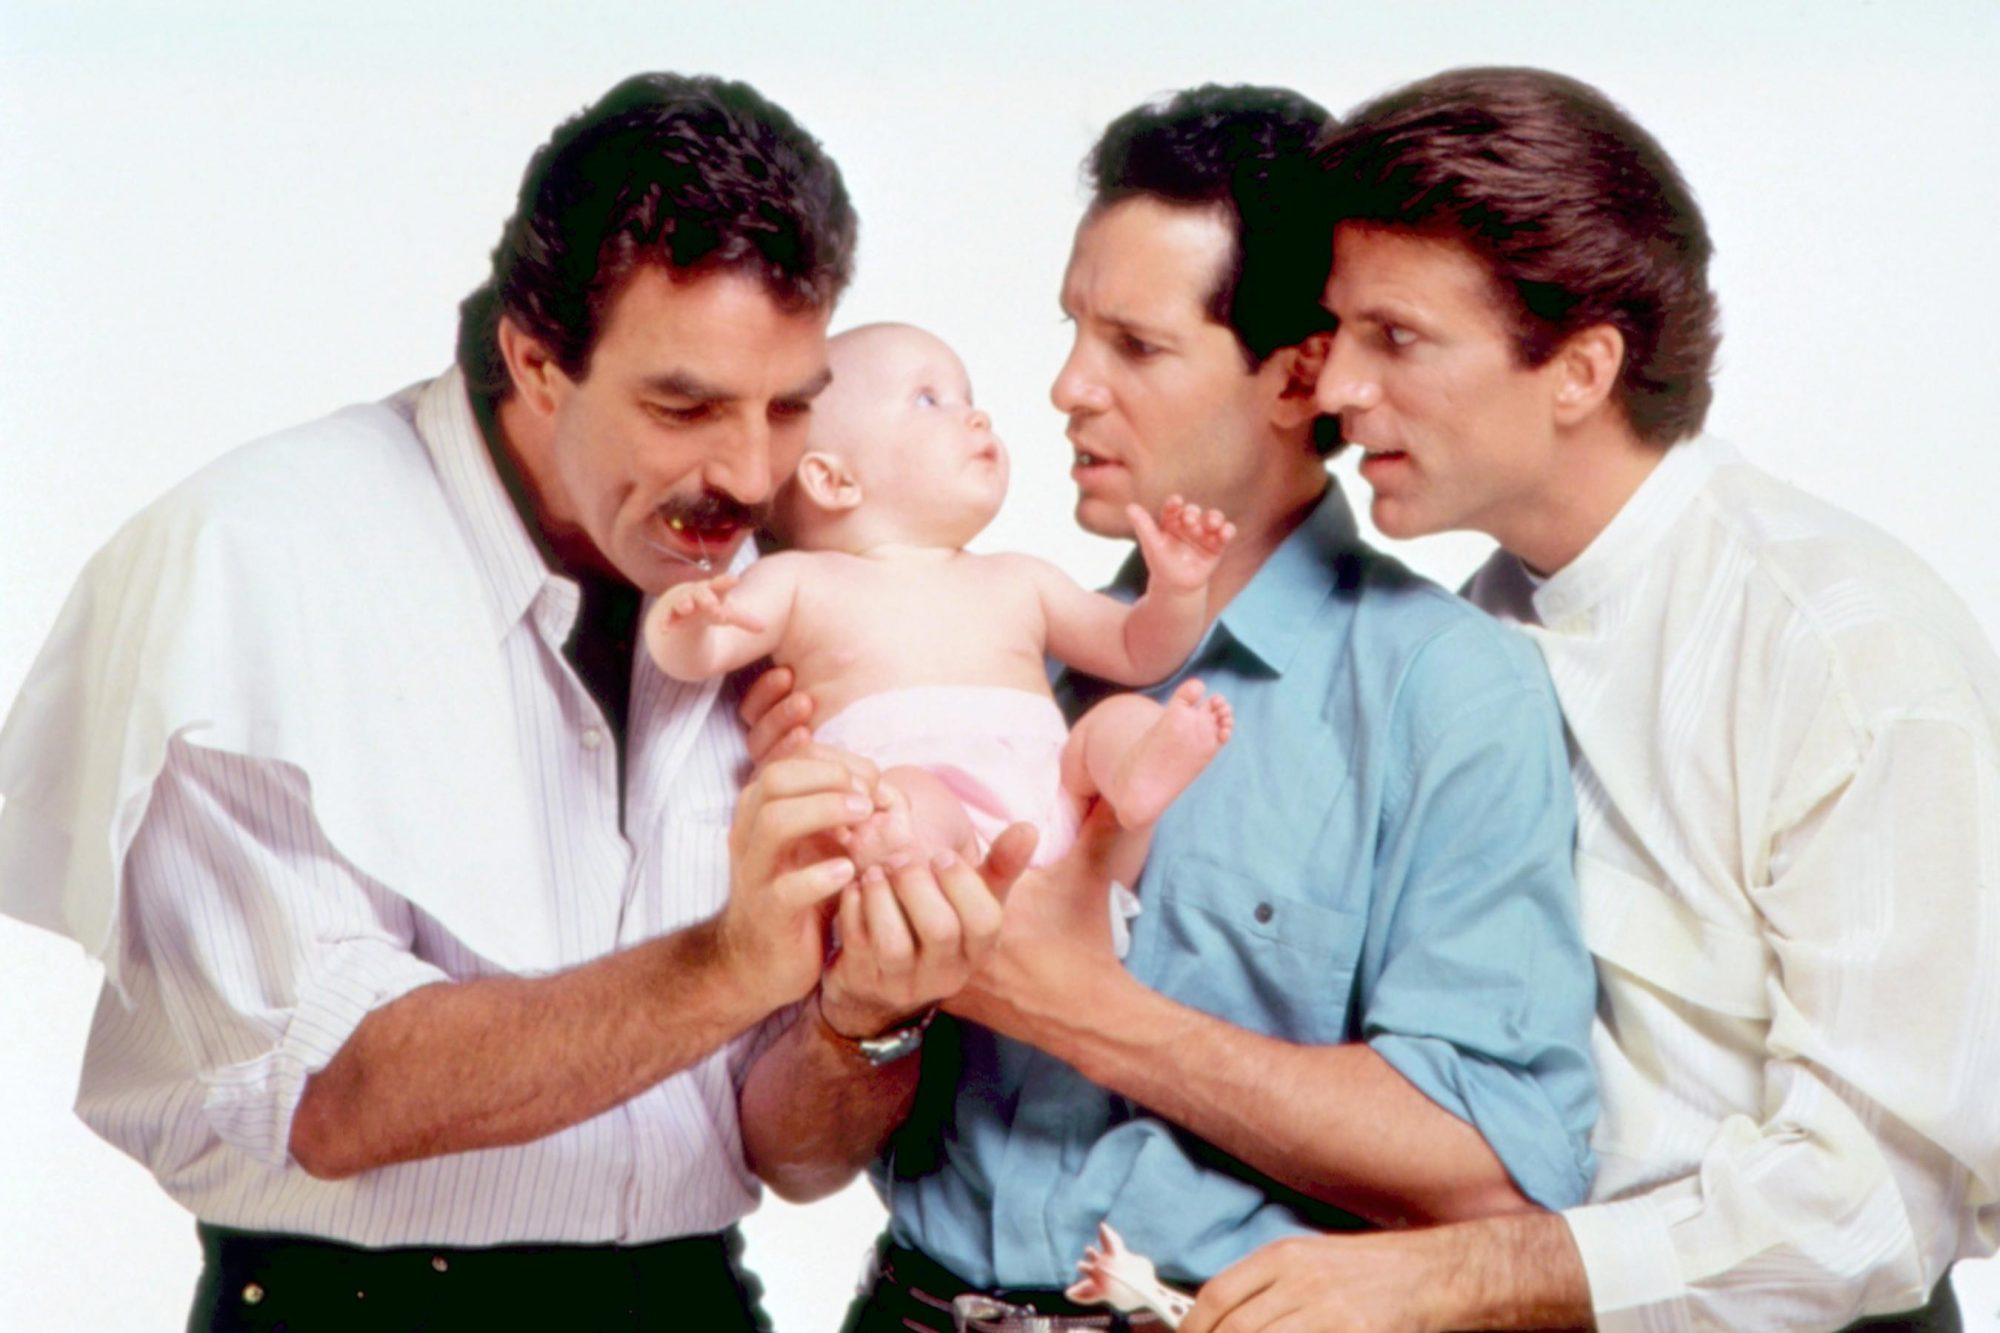 THREE MEN AND A BABY, Tom Selleck, Steve Guttenberg, Ted Danson, 1987. ©Touchstone Pictures/Courtesy